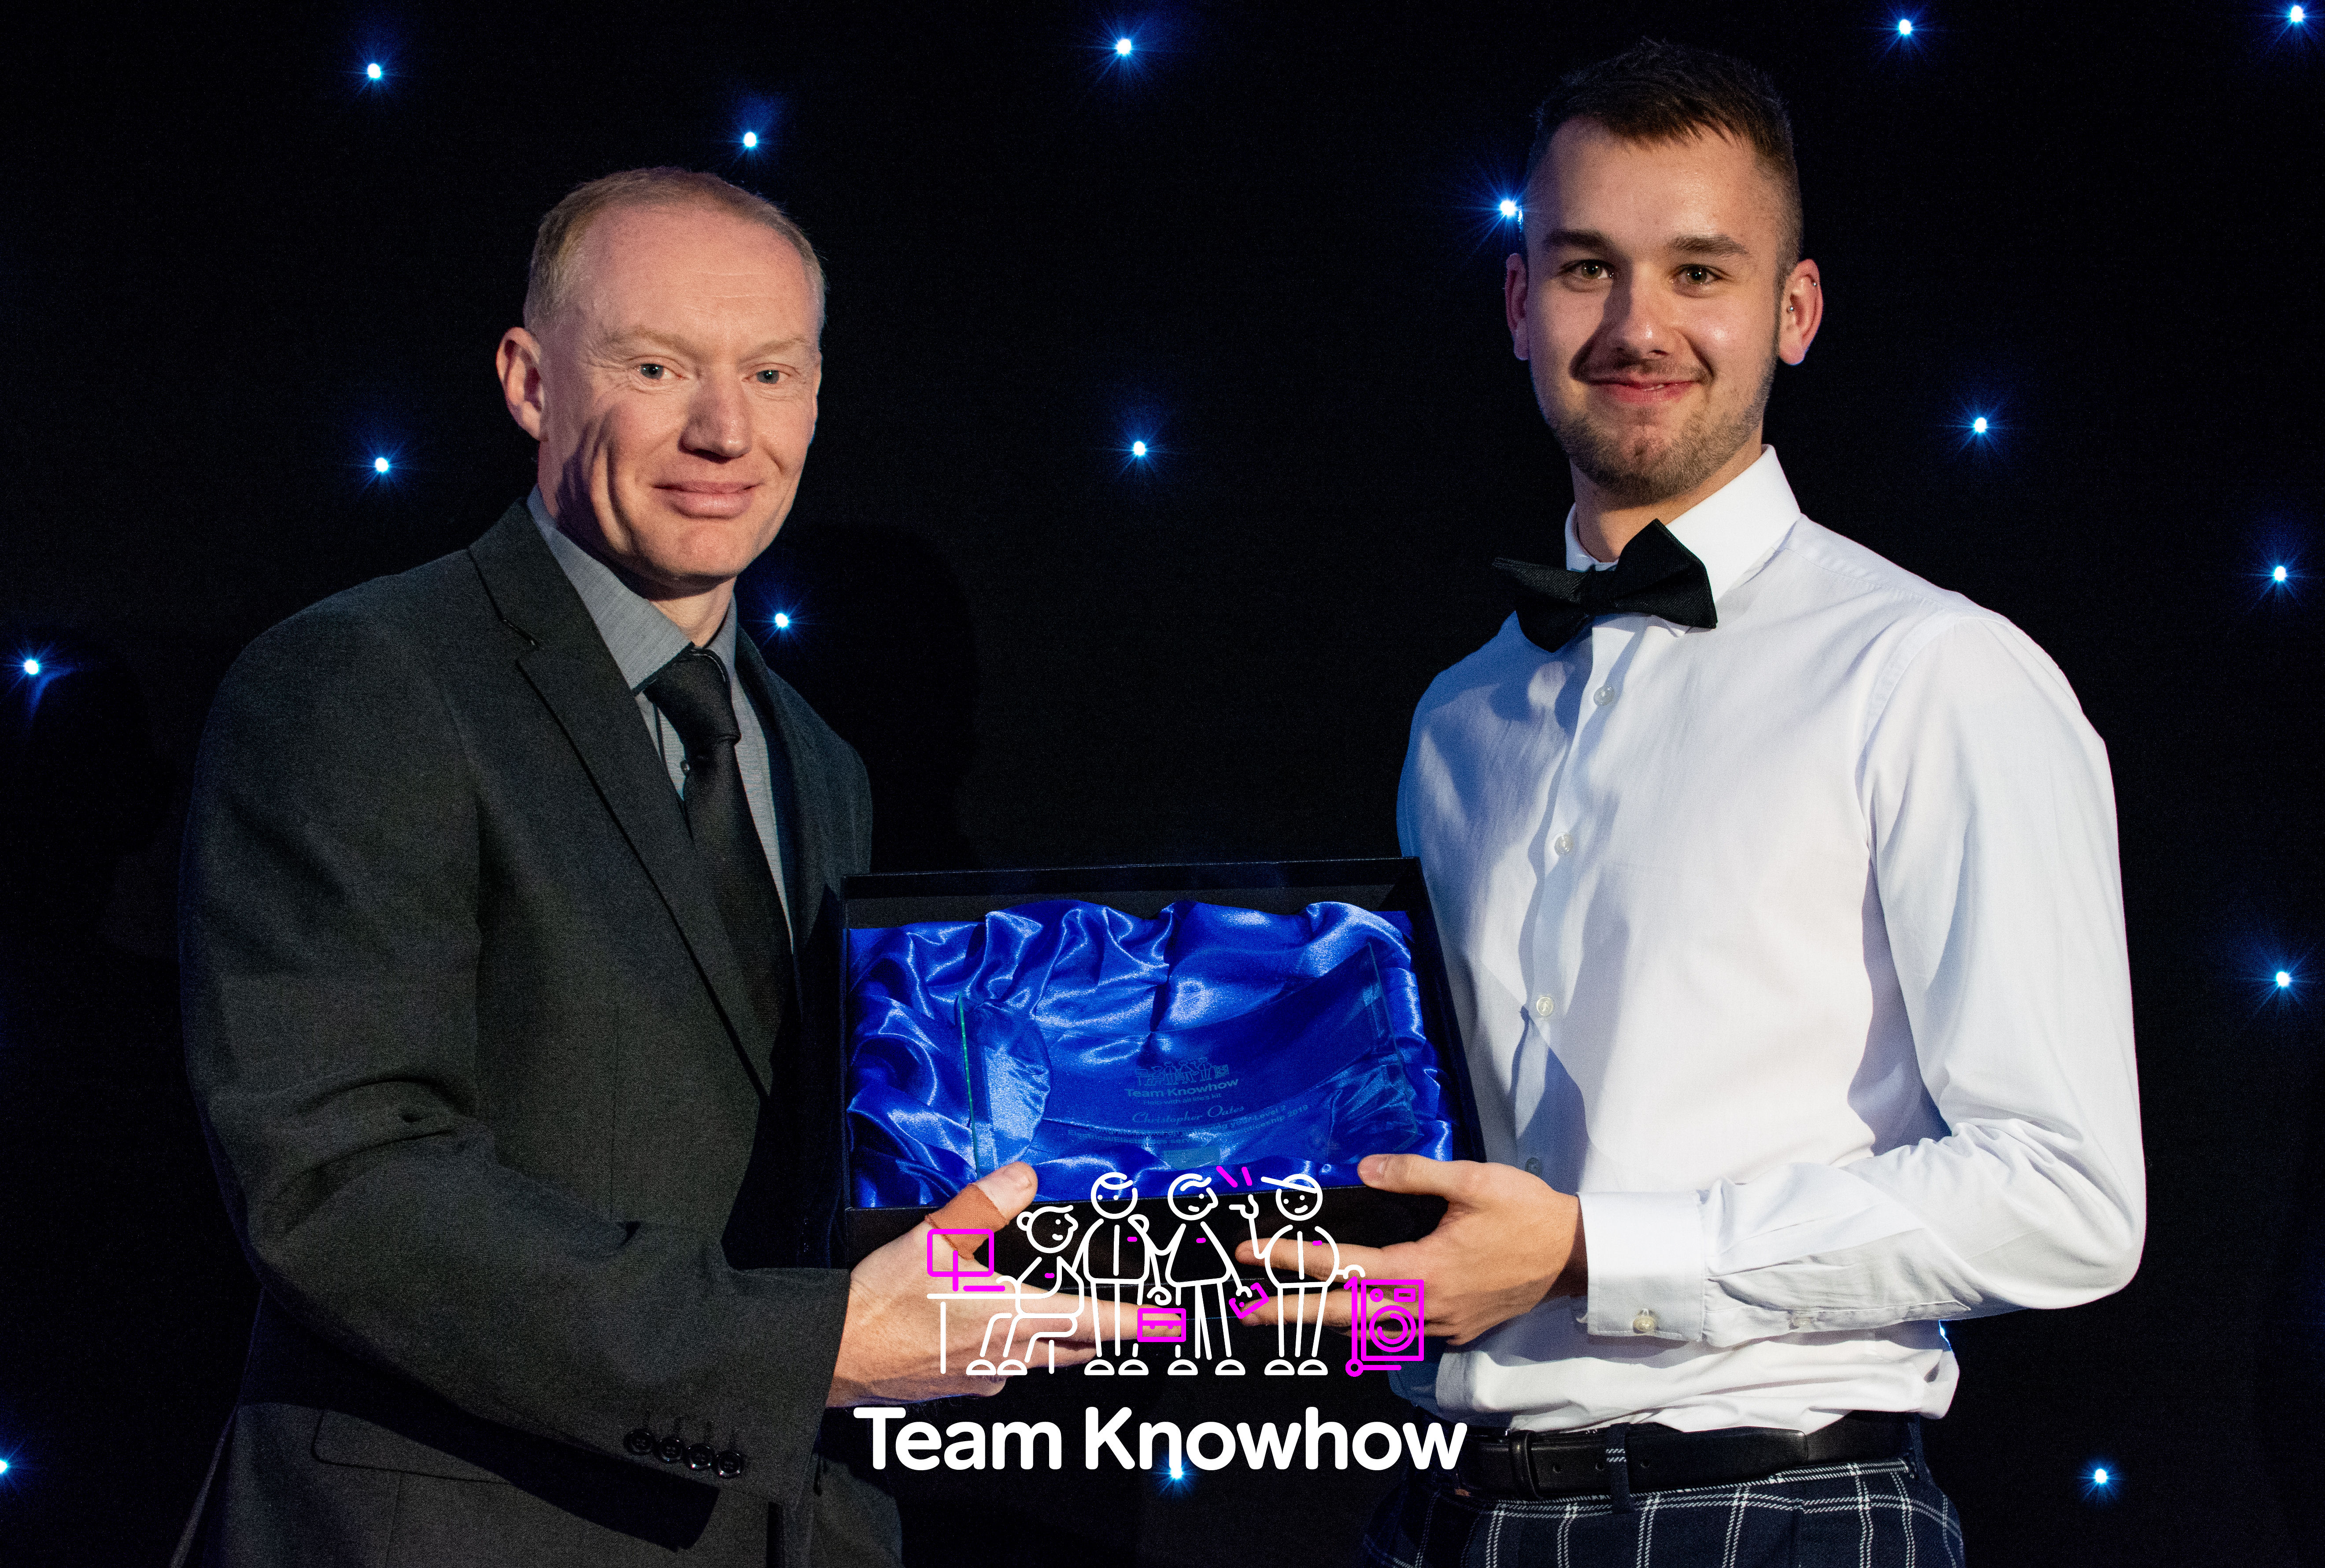 2019 TEAM KNOWHOW GRADUATION BALL